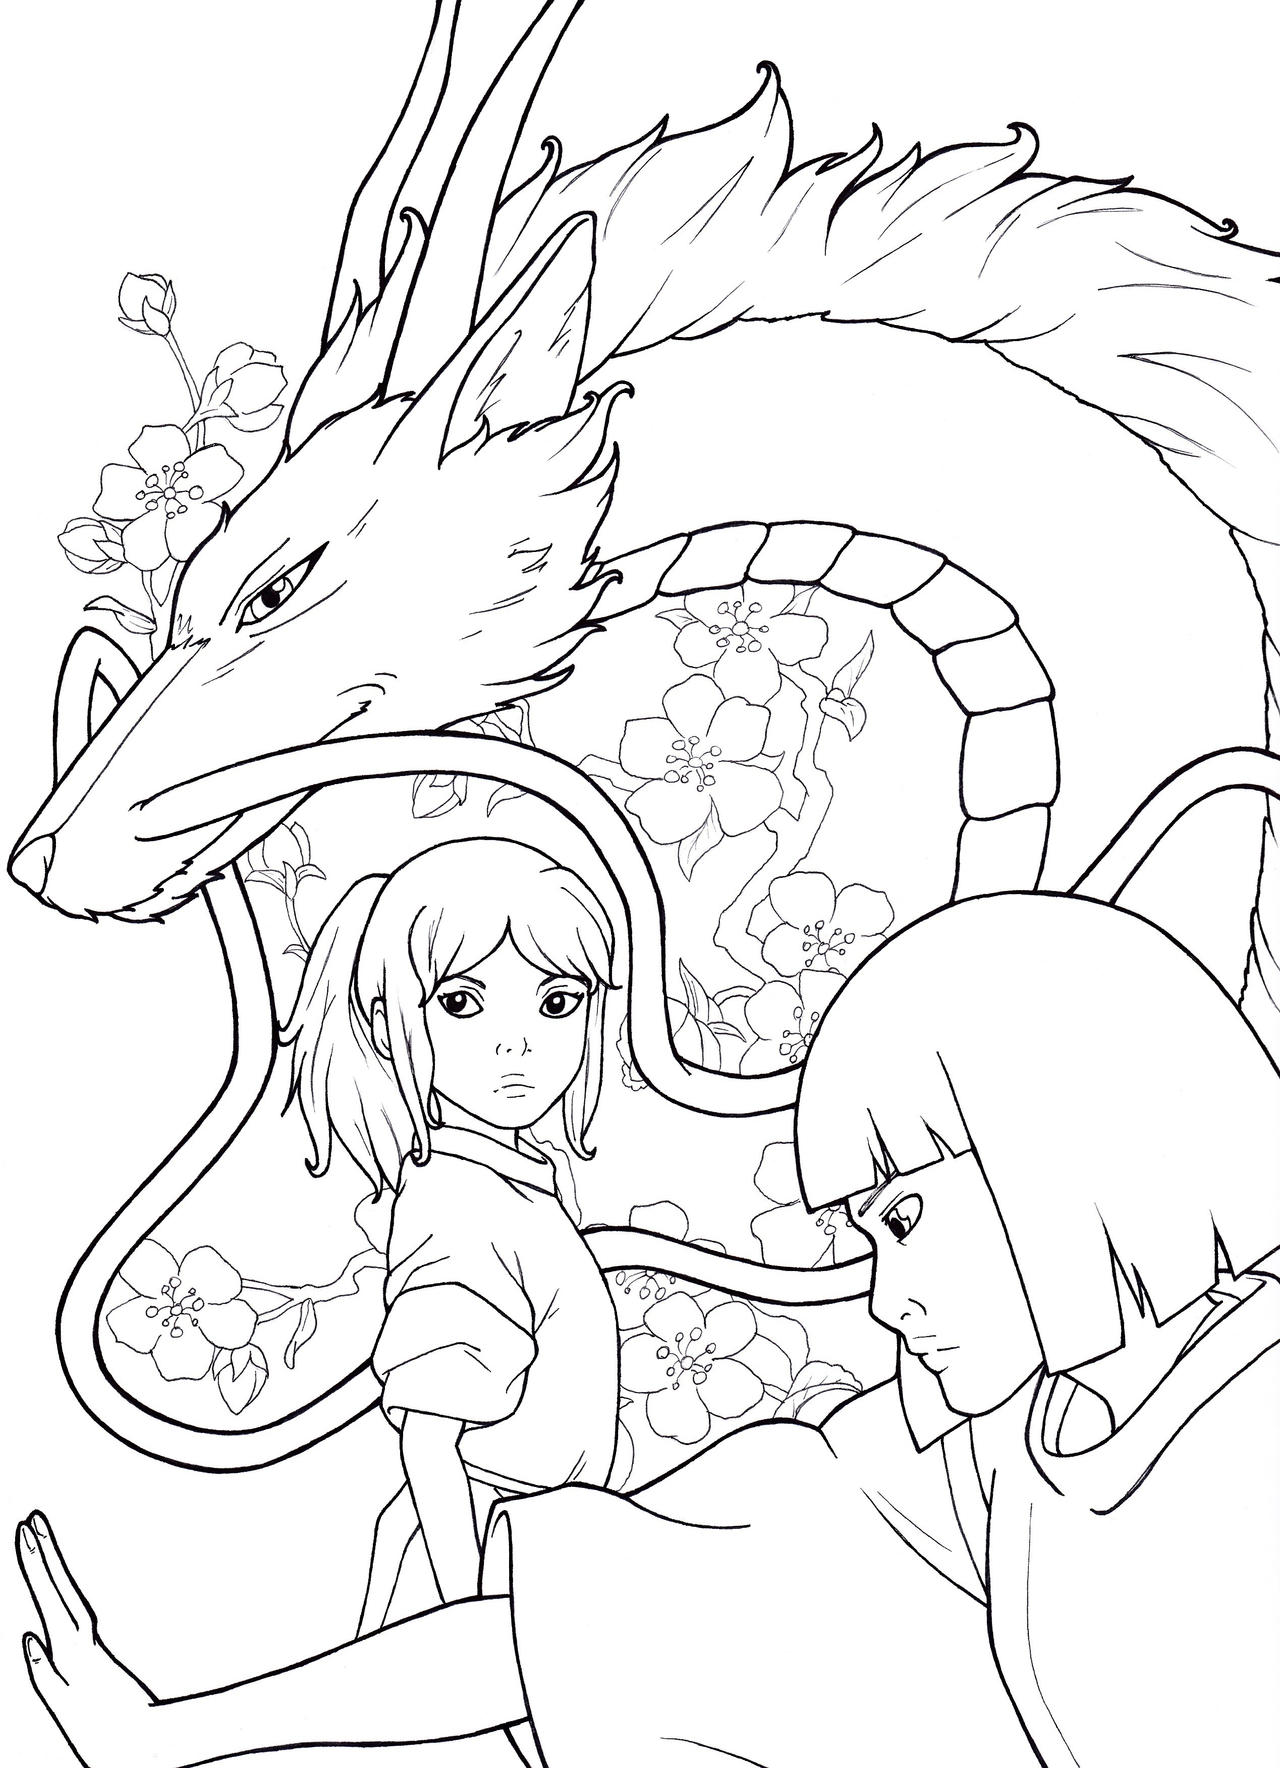 Line Drawing Artists Names : Remember your name line art by fatgurl on deviantart